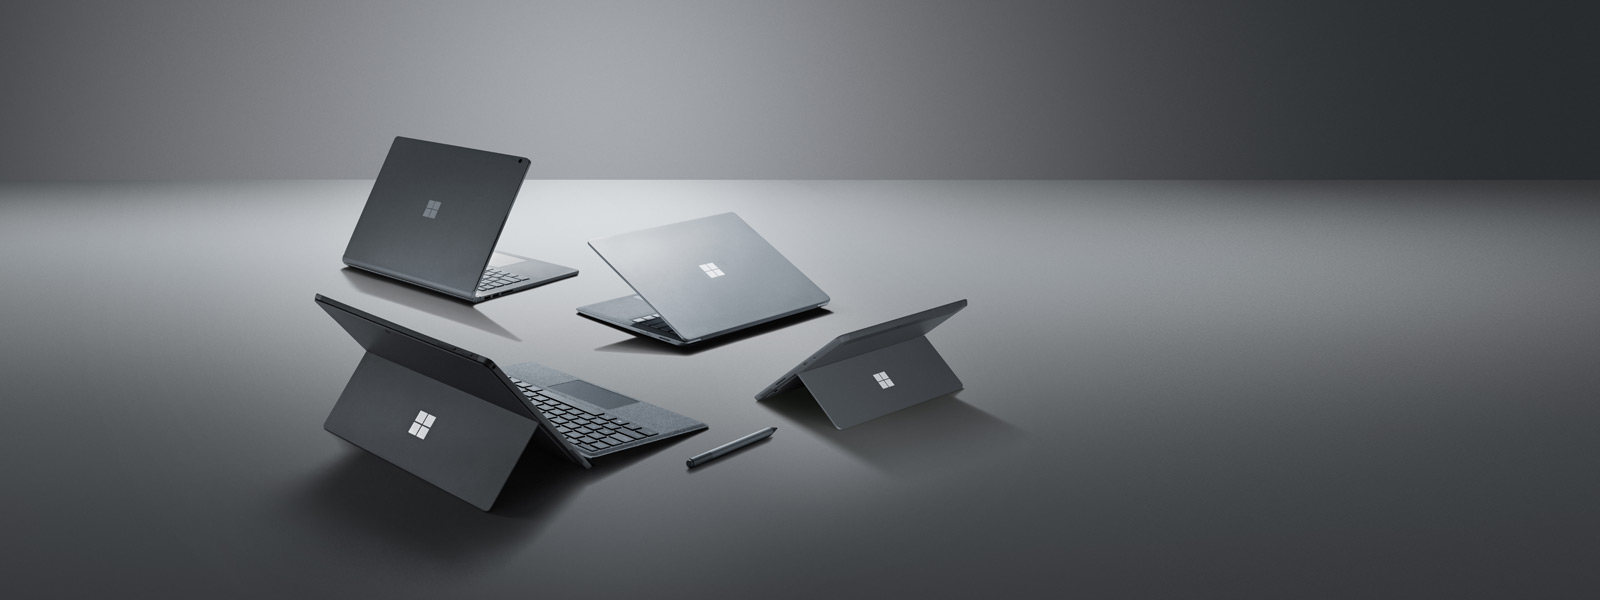 Surface Go、Surface Book 2、Surface Pro 6 (プラチナ)、Surface Laptop 2 (プラチナ)、Surface Pen